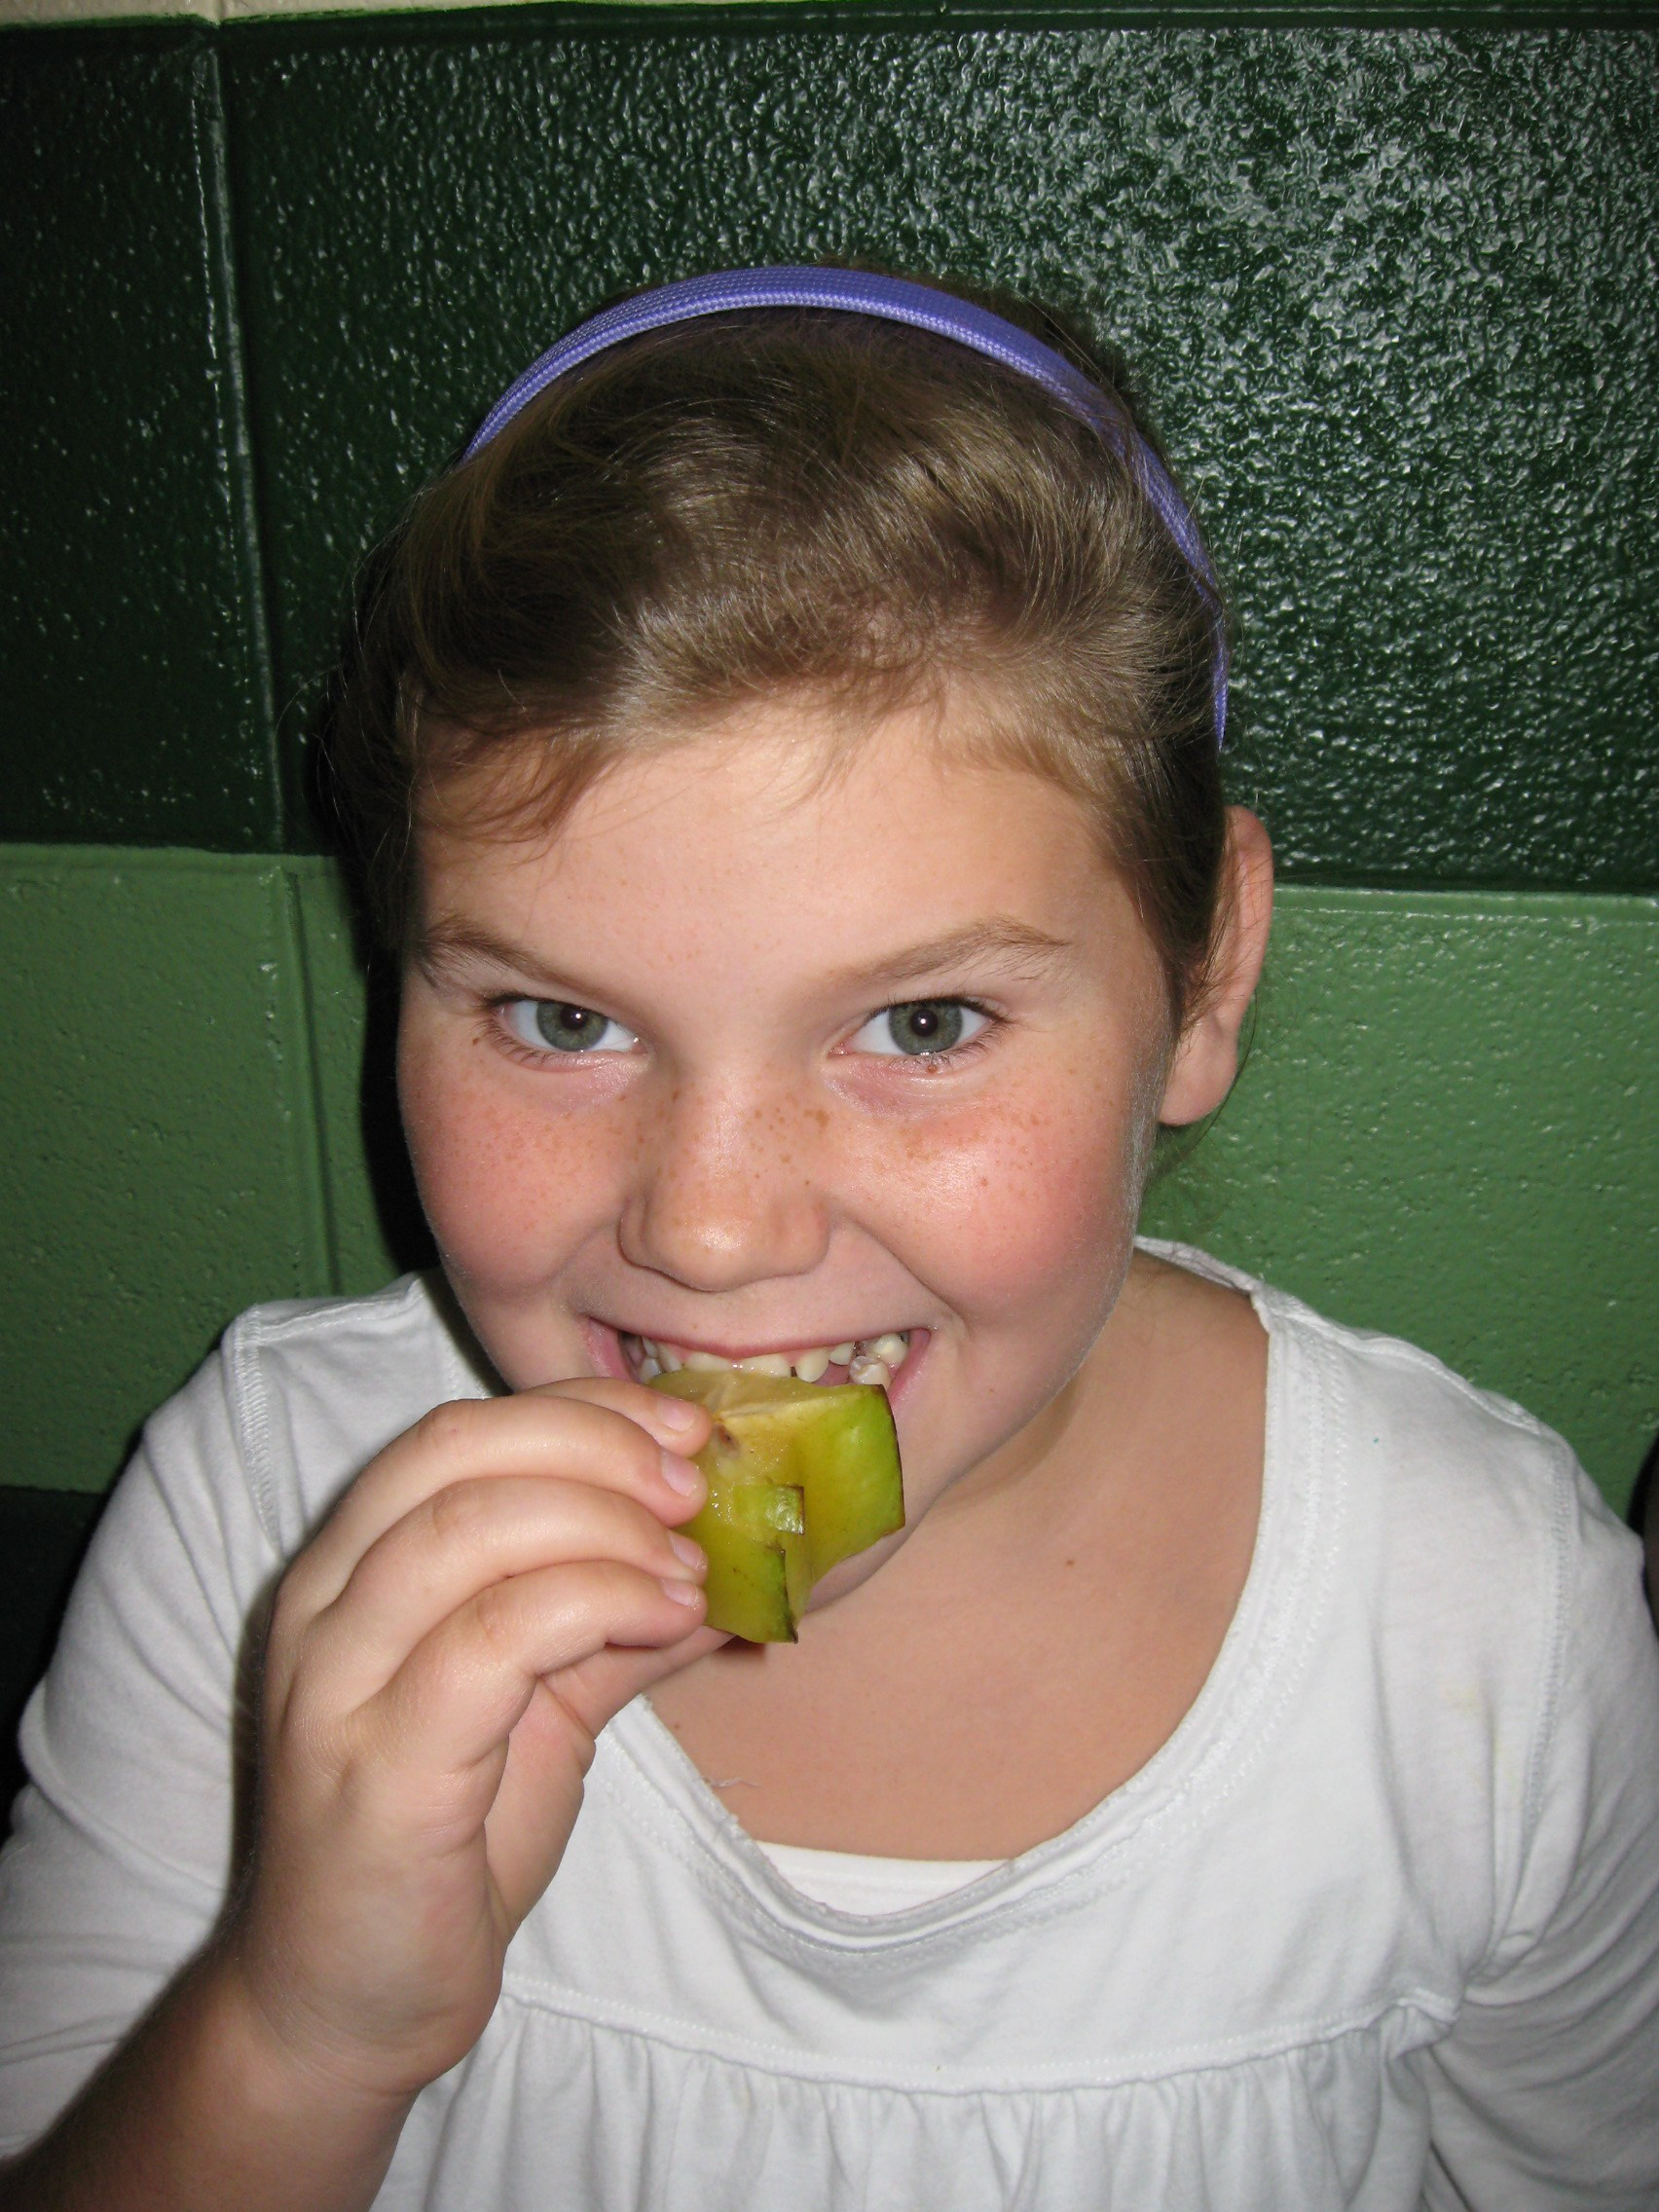 Student eating fruit.